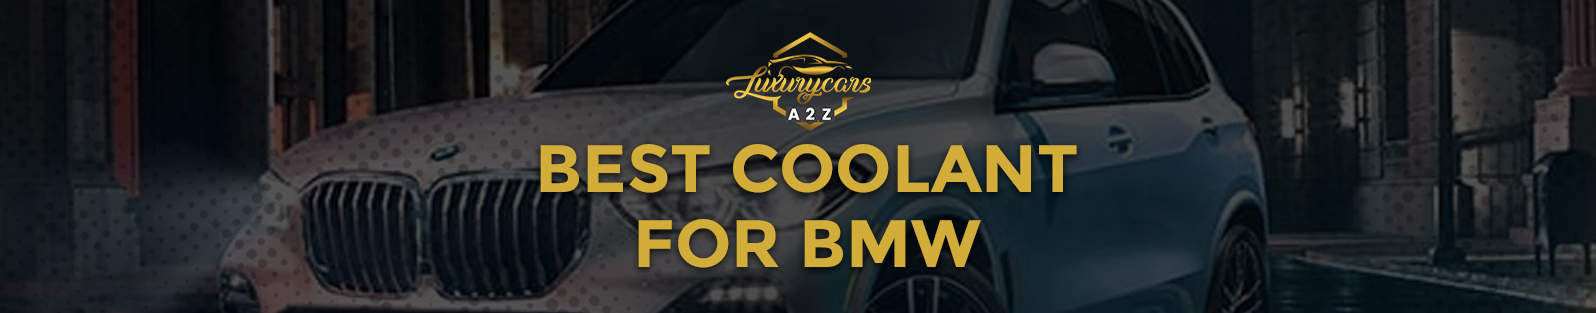 best coolant for bmw